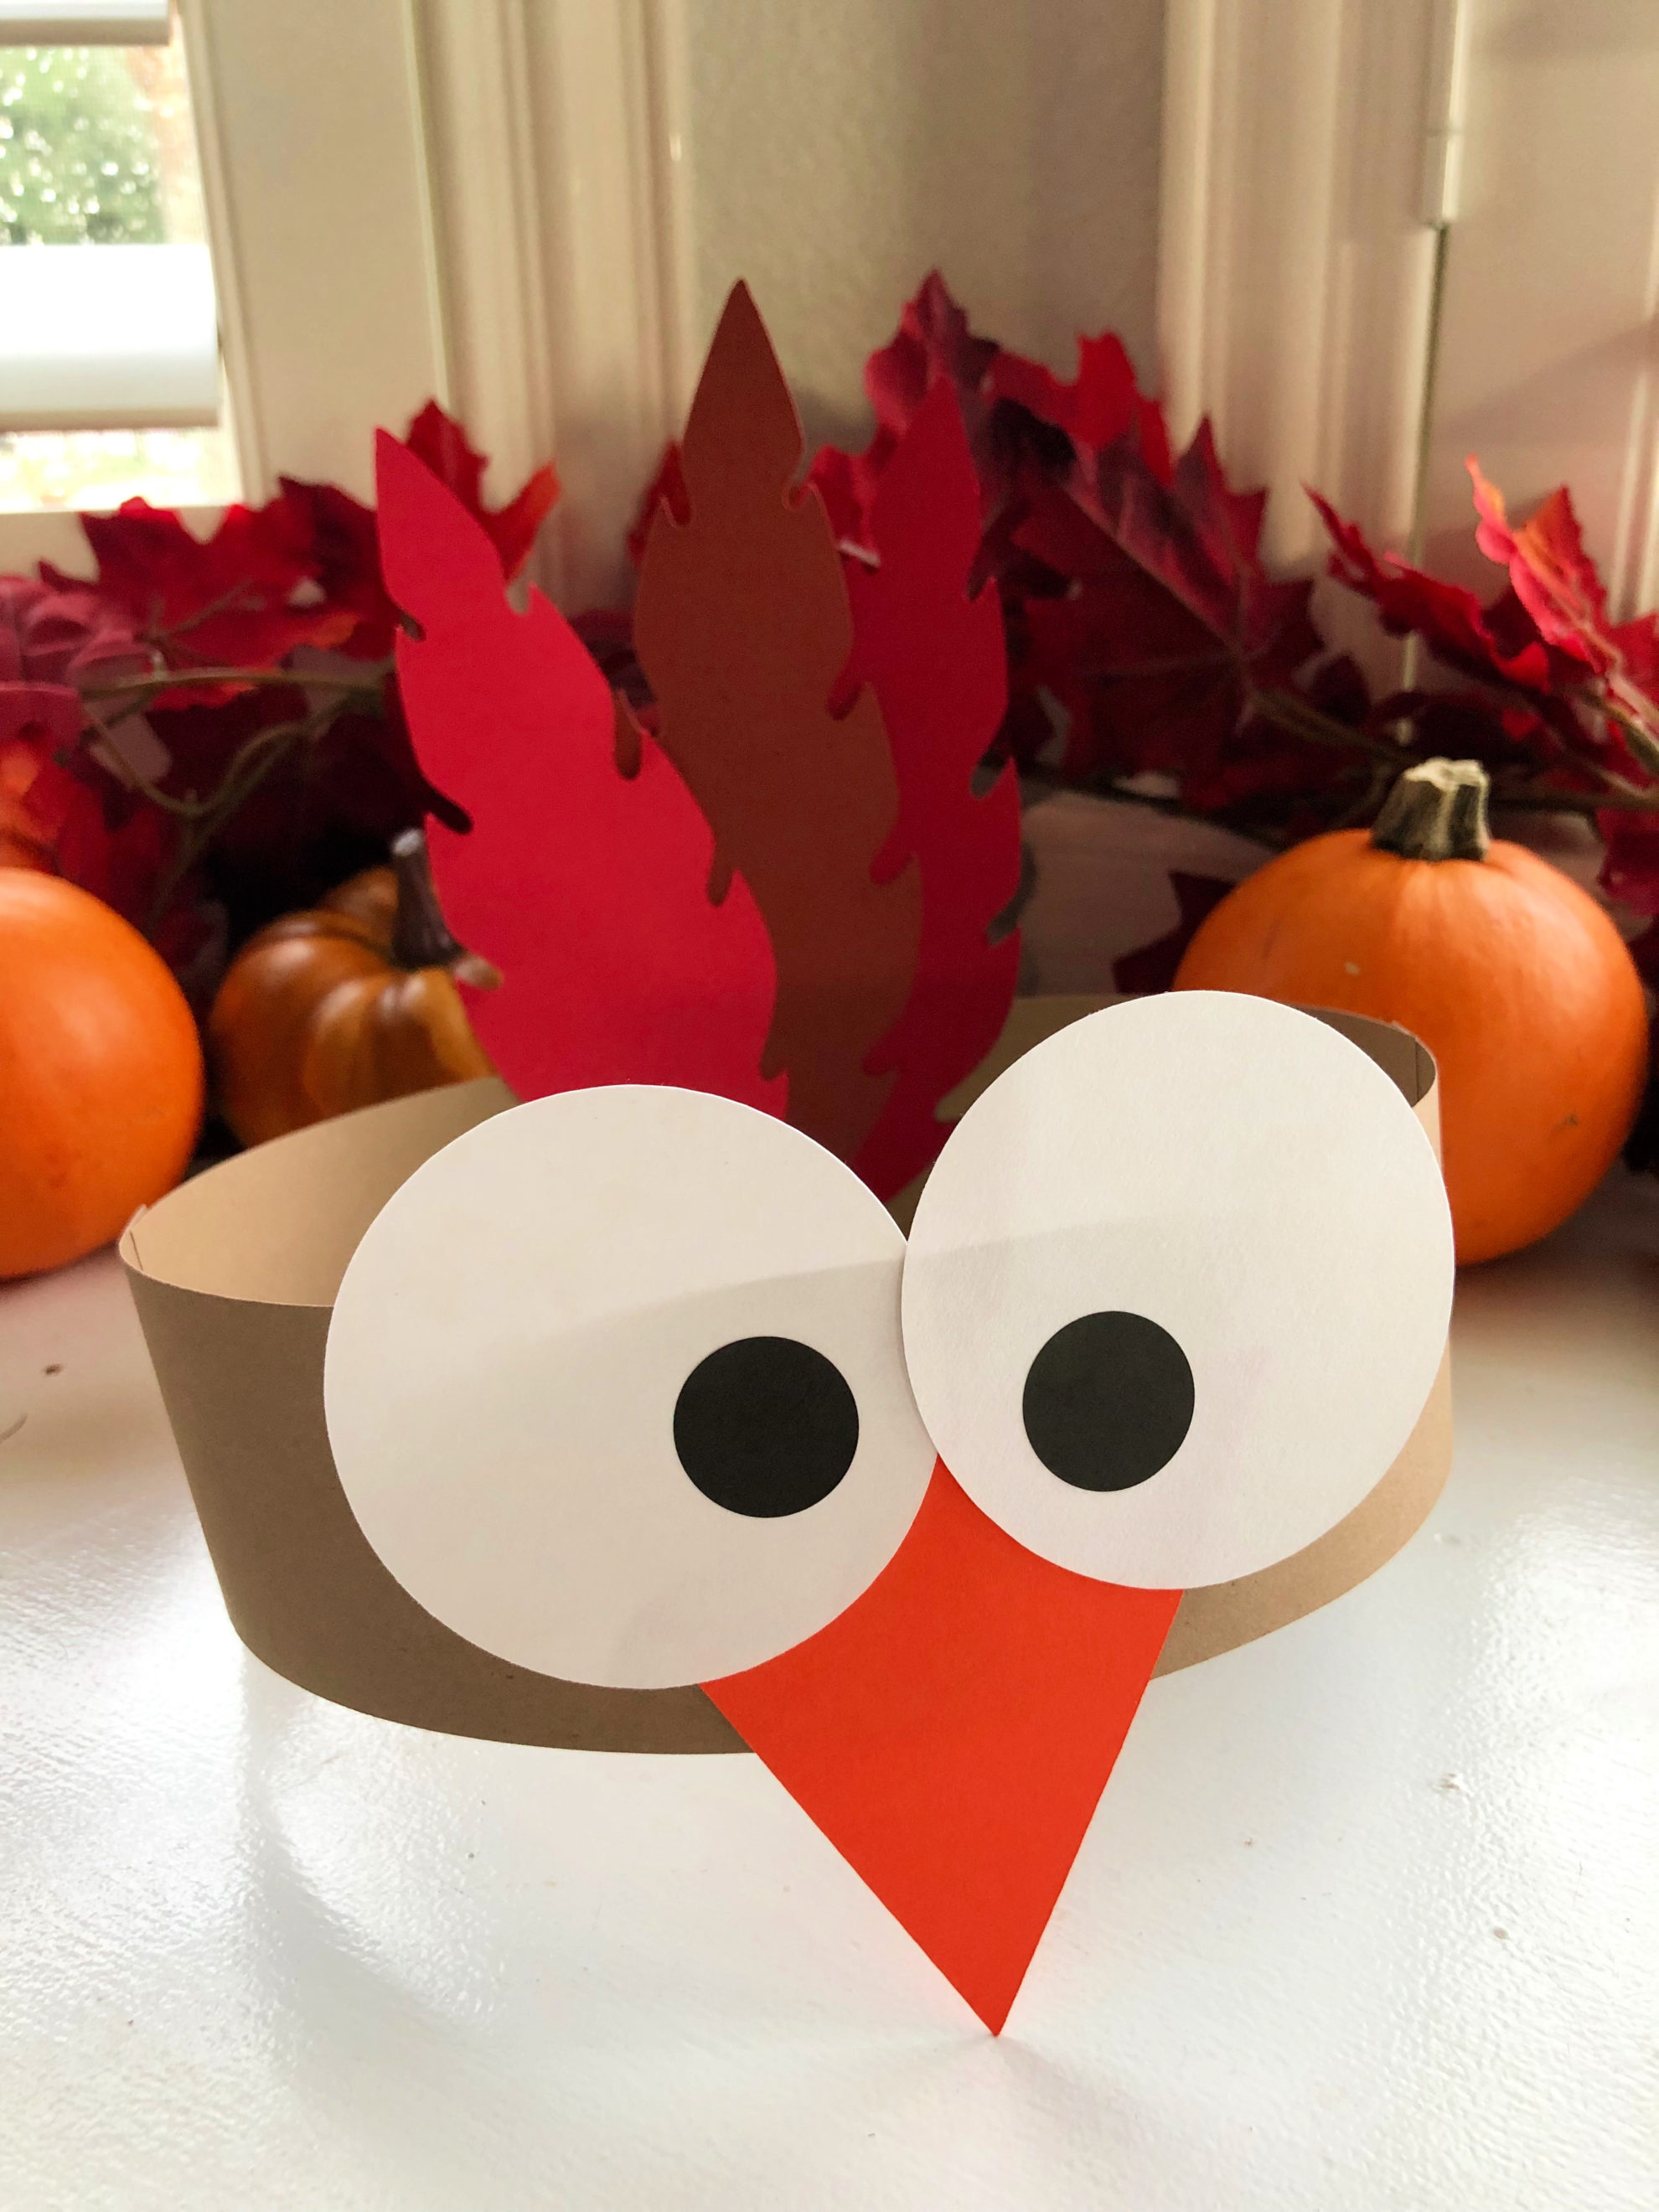 Turkey Paper Headbands for Kids with fall leaves and pumpkins in the background.